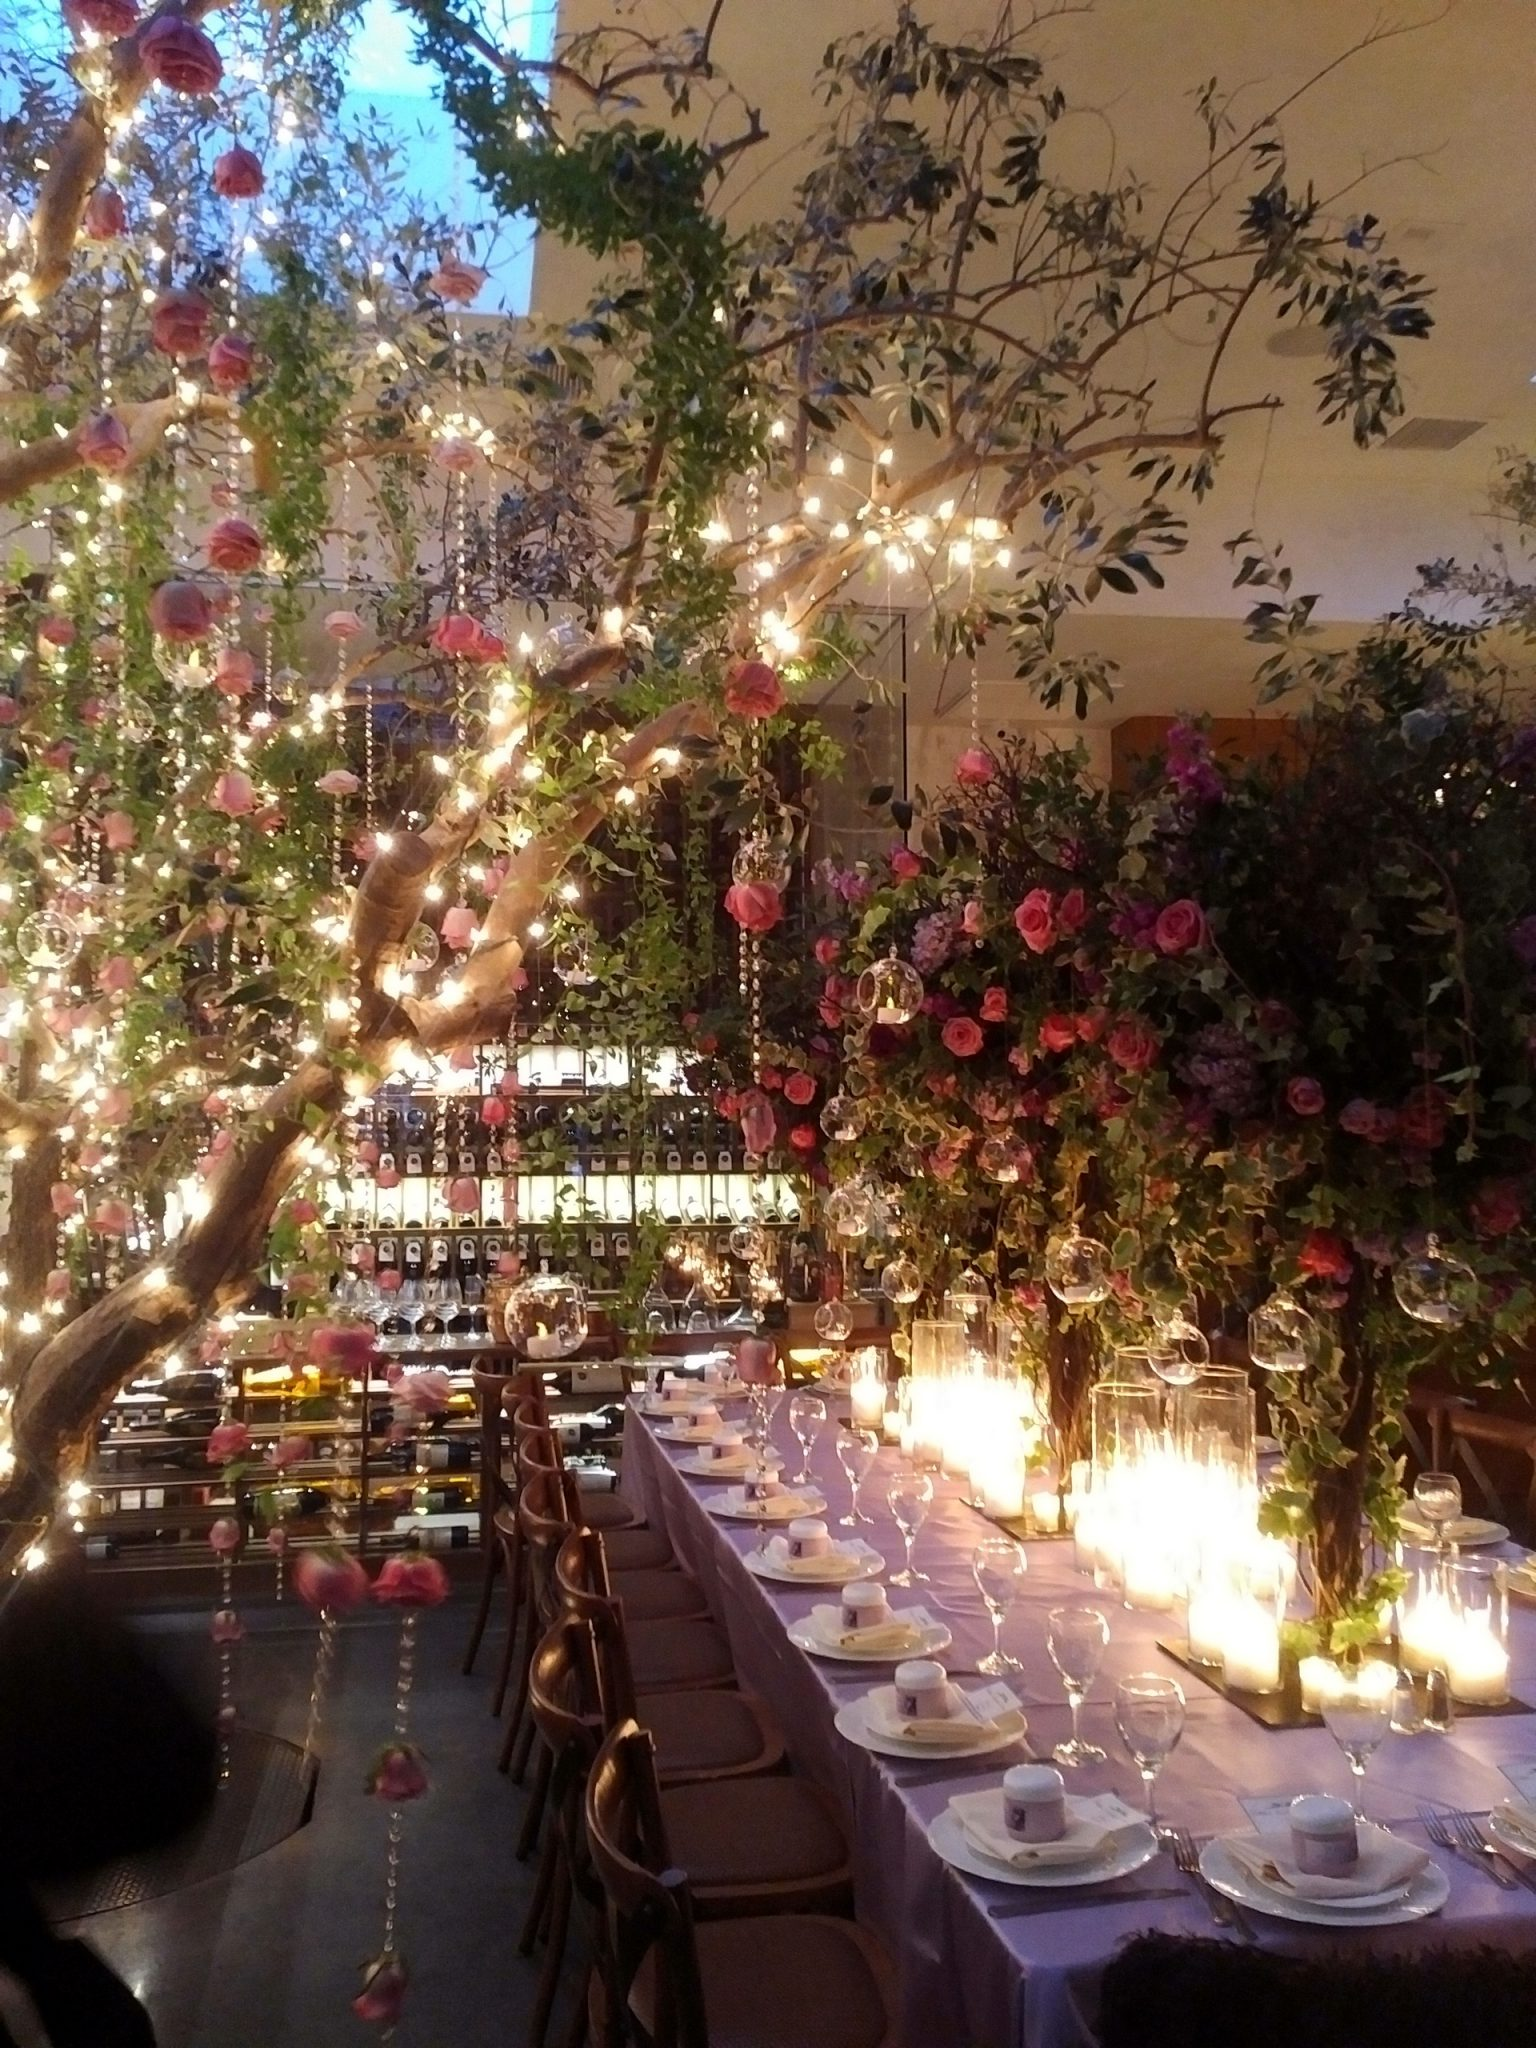 Il Pastaio Restaurant | Private Dining Events-392015016